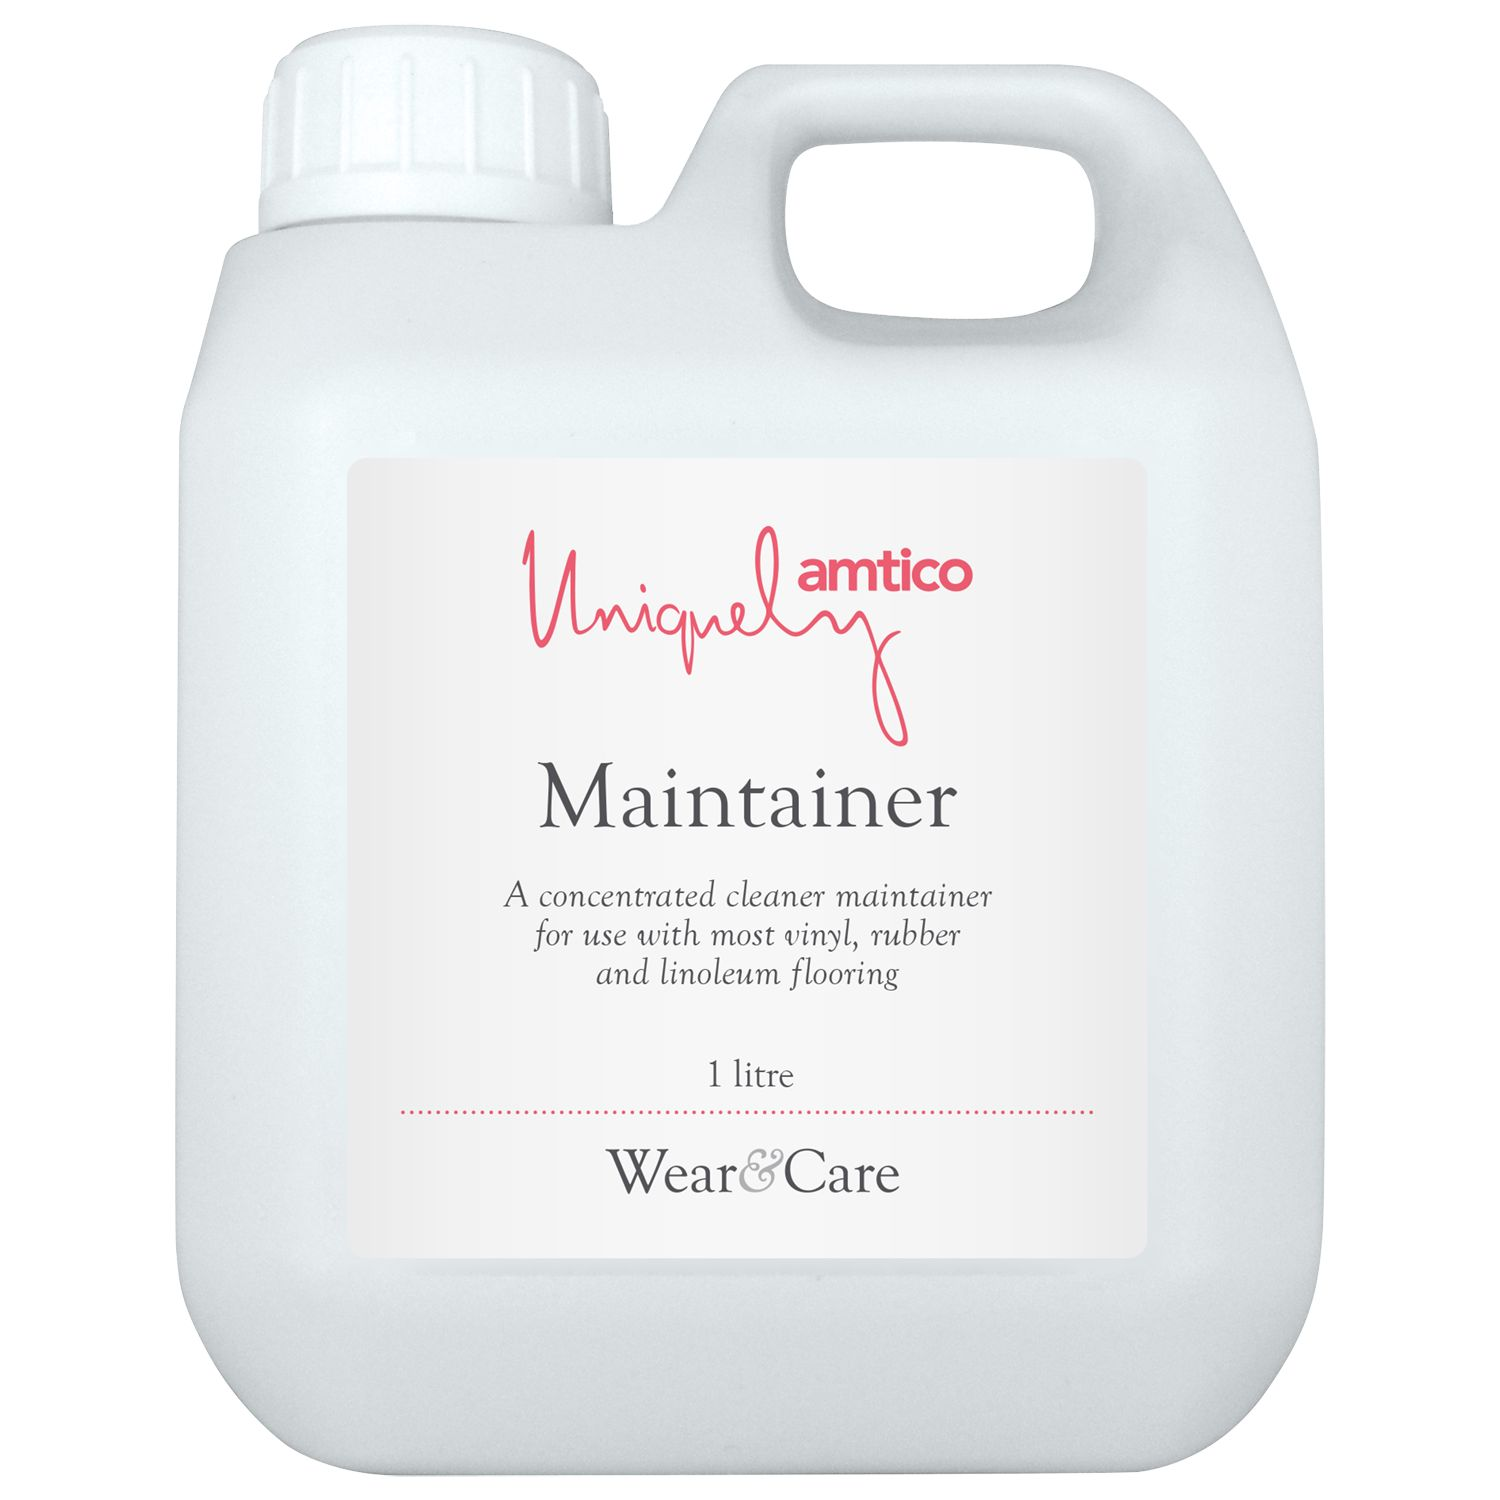 Amtico Amtico International Floorcare Maintainer, 1 Litre